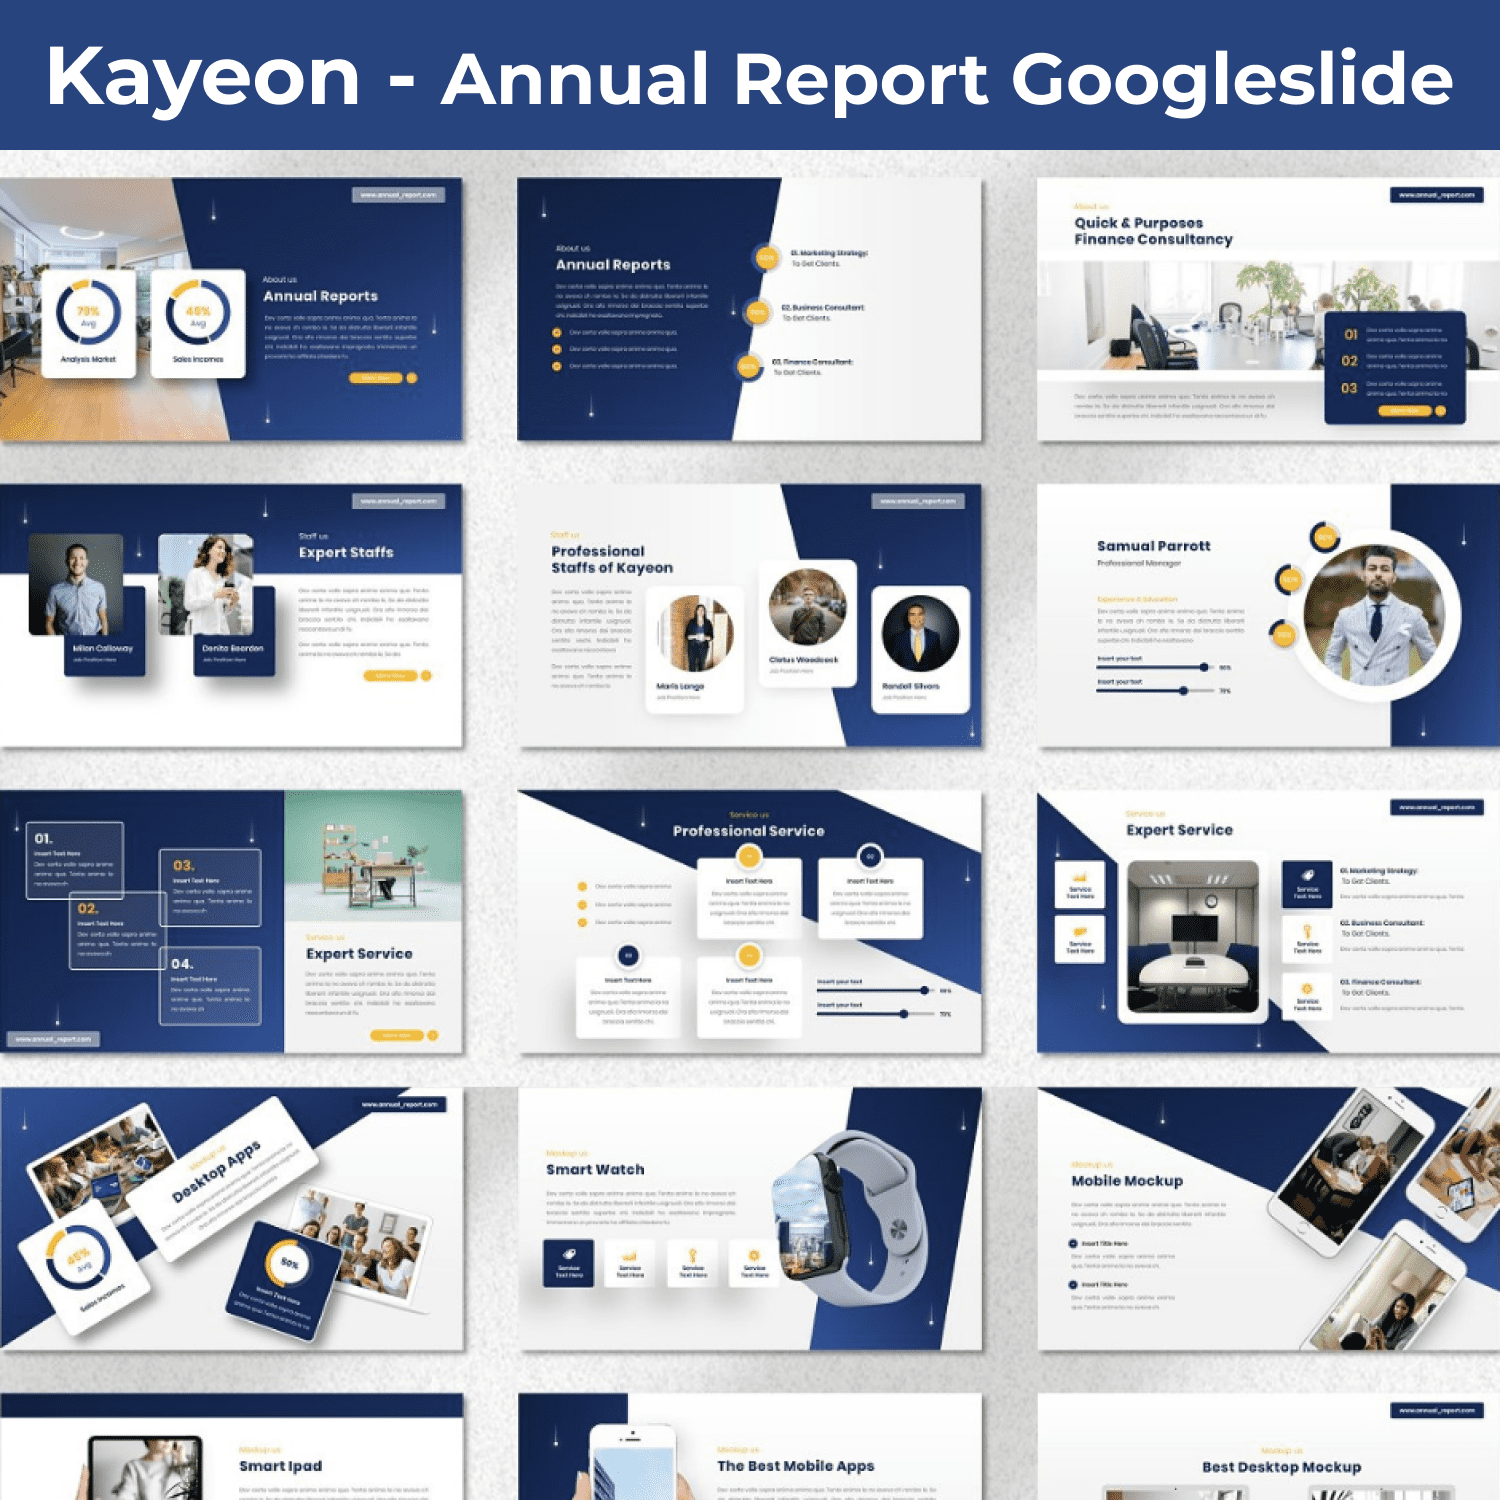 Kayeon - Annual Report Googleslide main cover.